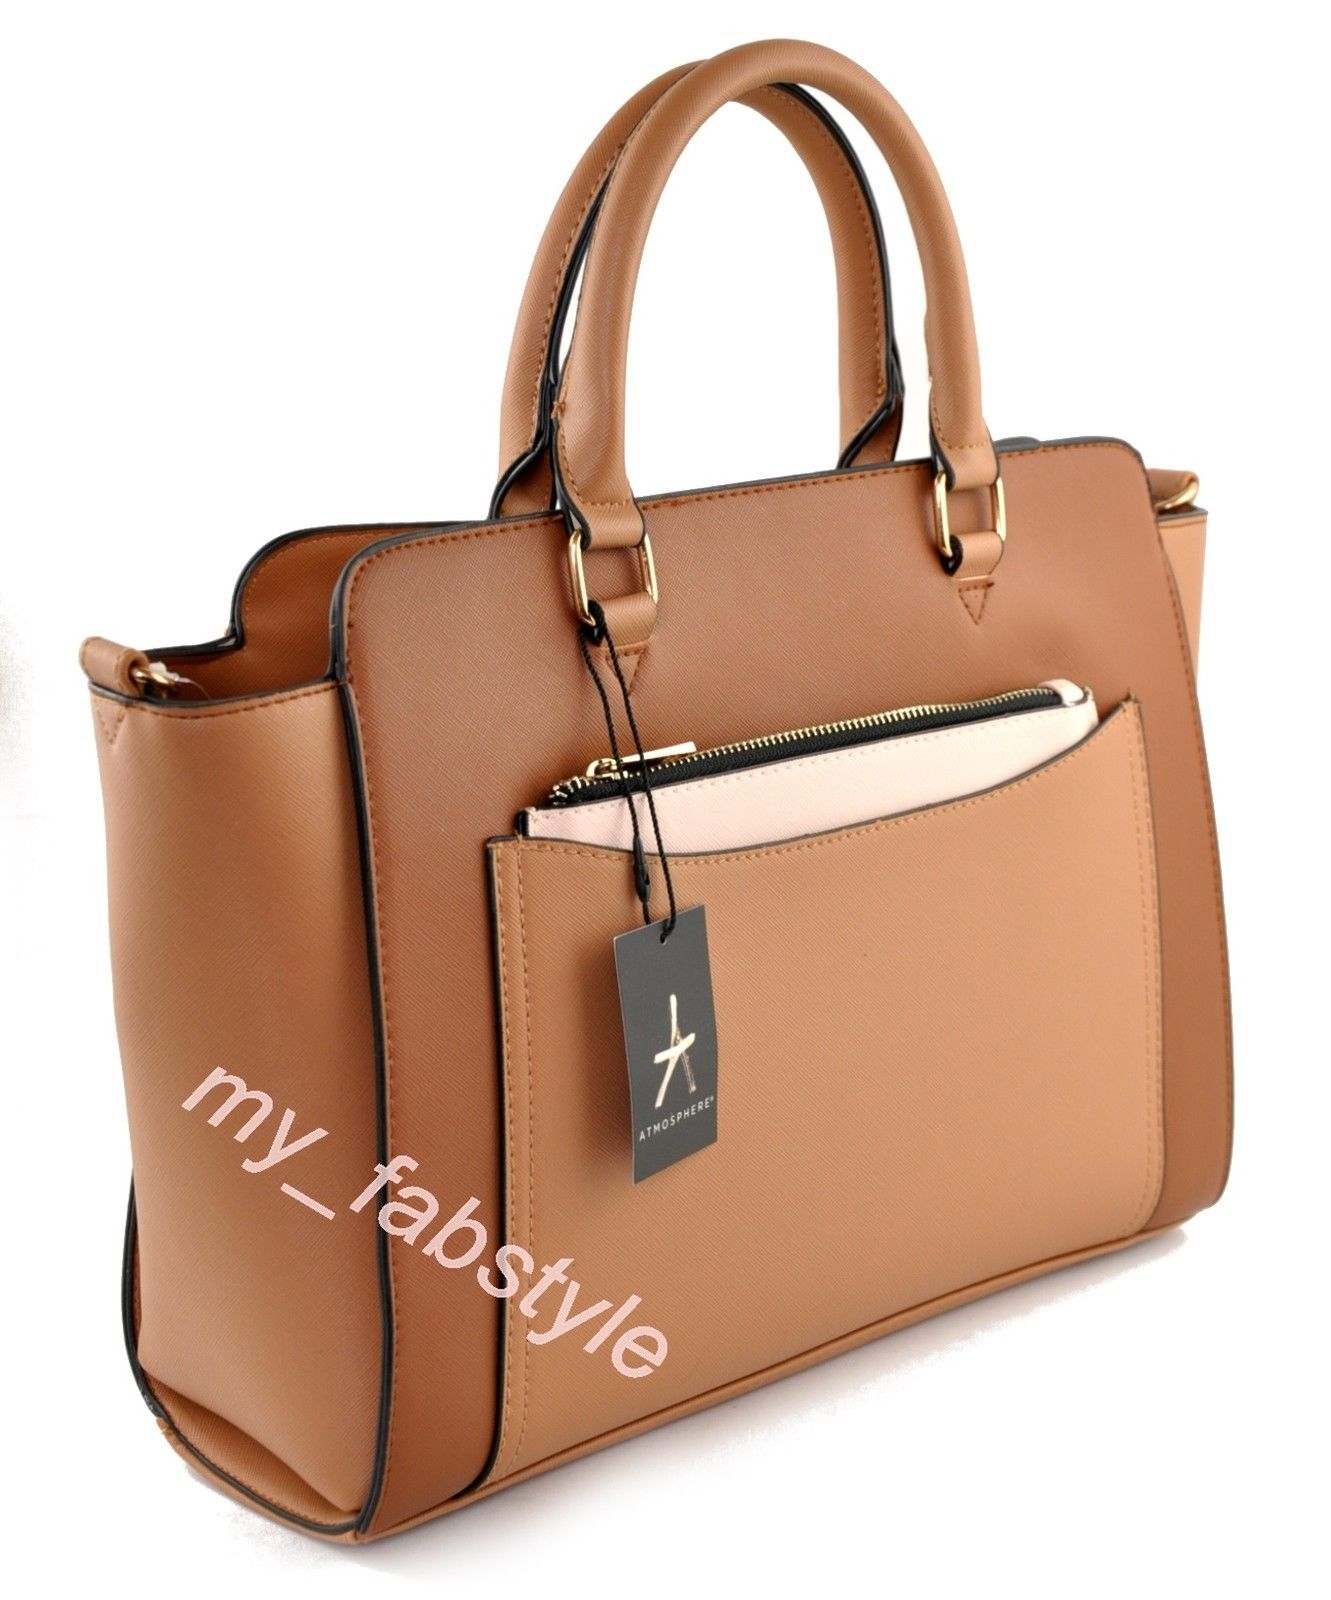 Primark Ladies Women s TOTE HANDBAG Bag atmosphere Tan  6cae68c94b480